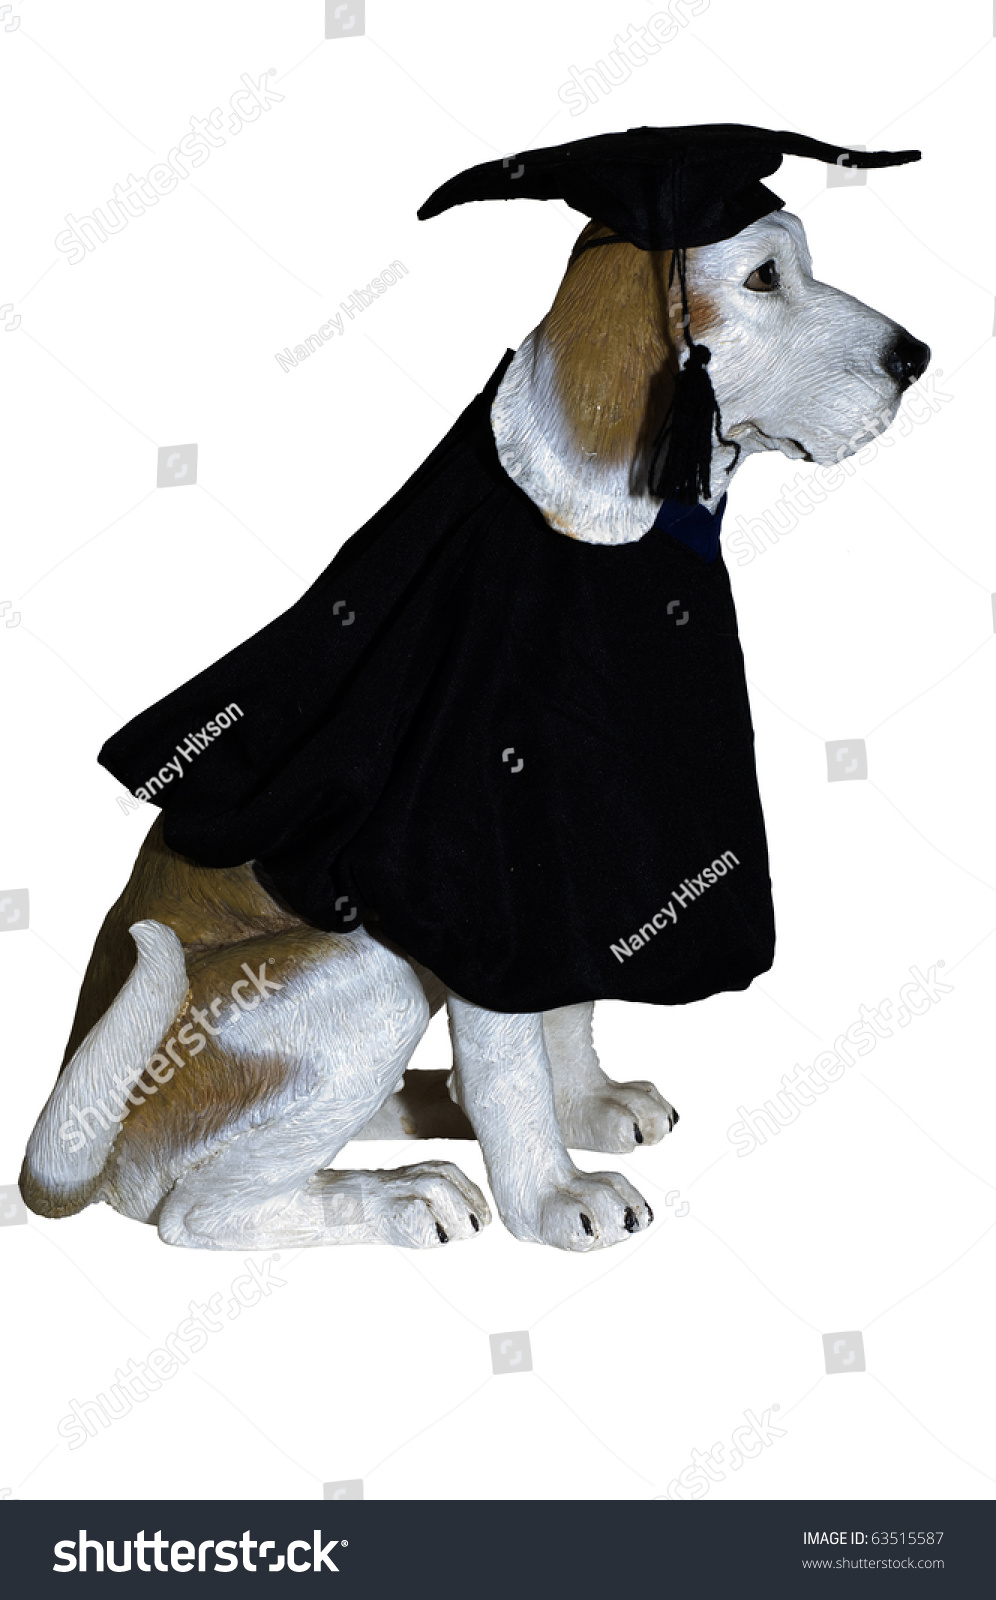 Dog Statue Dressed Black Graduation Gown Stock Photo (Royalty Free ...